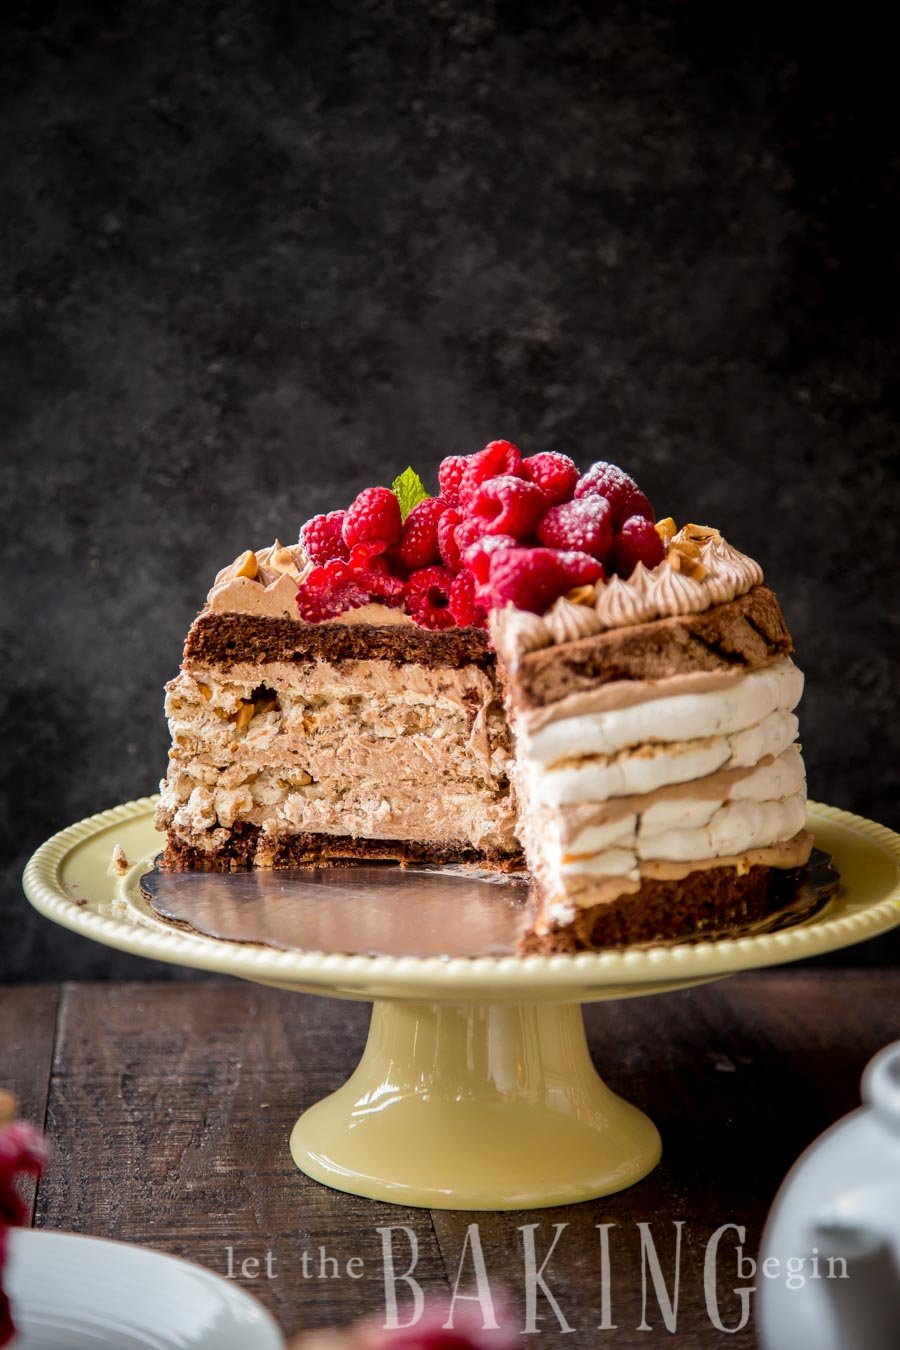 Hazelnut Meringue Nutella Cake - Layers Chocolate Poppyseed Cake, Hazelnut Meringue and Nutella Custard Buttercream will have your guests swoon from this deliciousness! Step by Step pictures are included for guaranteed success! | by Let the Baking Begin!